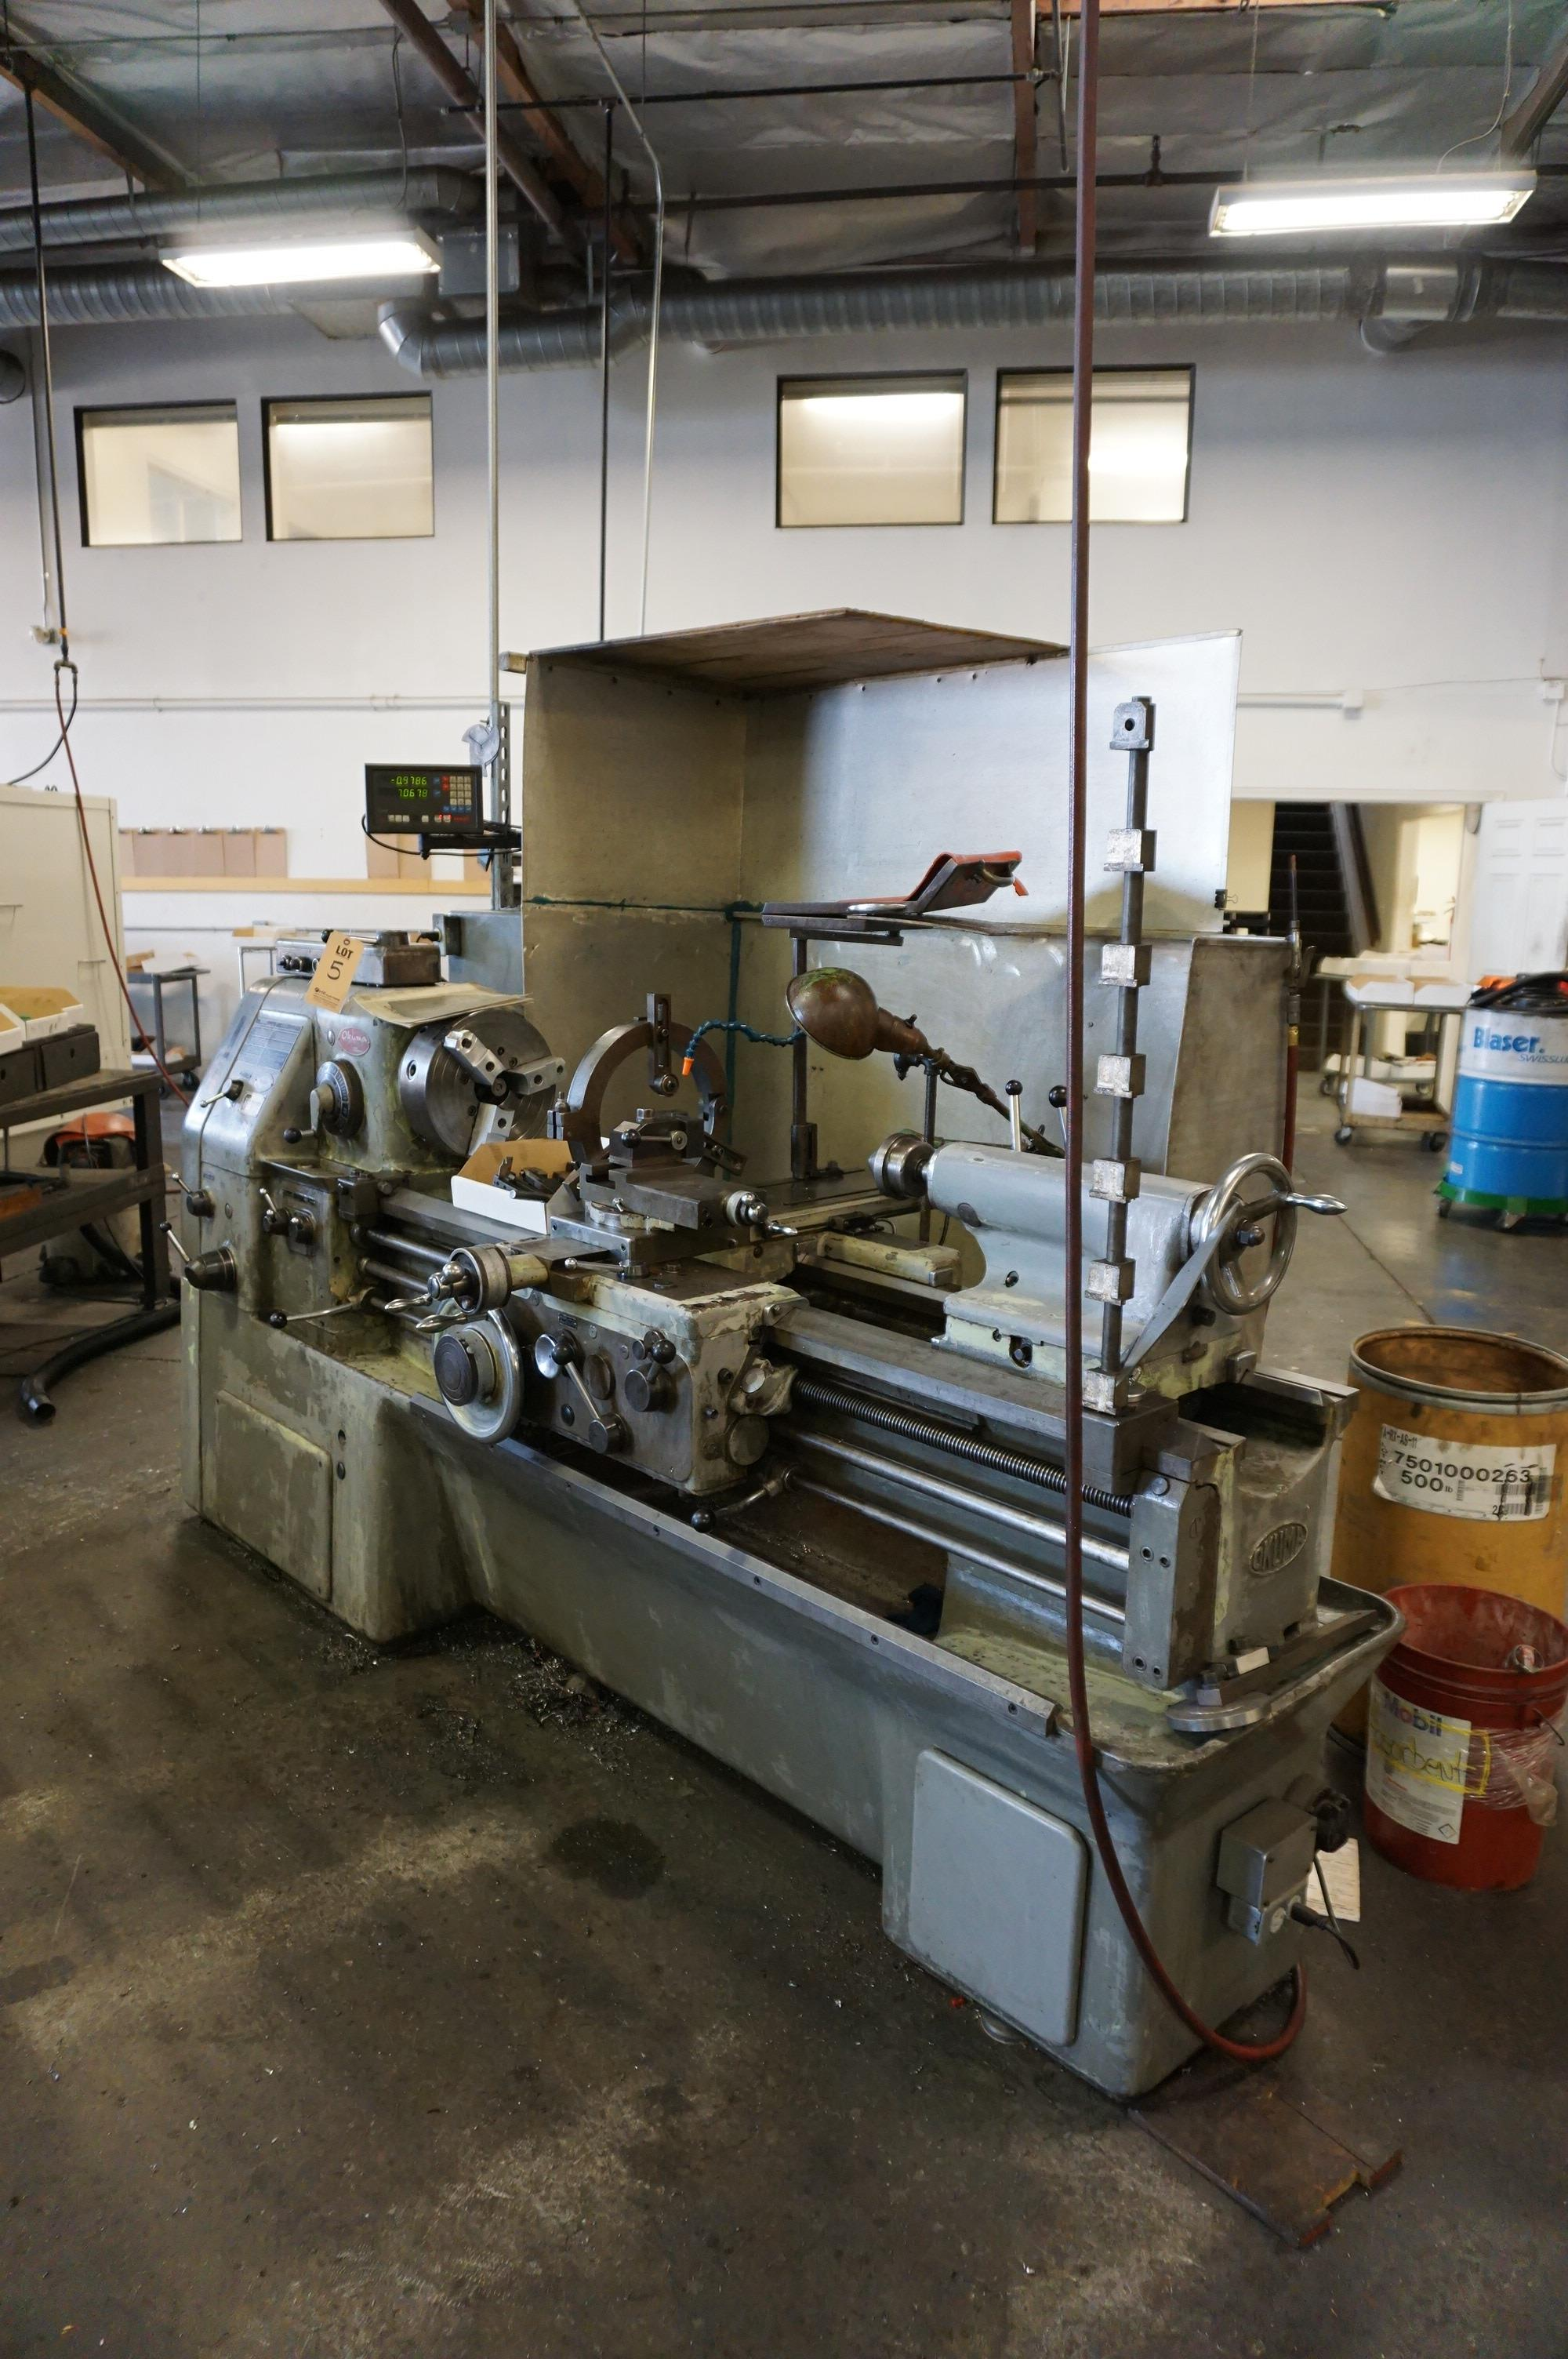 """OKUMA LS 16"""" x 47"""" SWING, S/N 4012-8916 WITH NEWALL TOPAZ DRO, WITH CATALOG, CHUCK, AND TOOL - Image 2 of 8"""